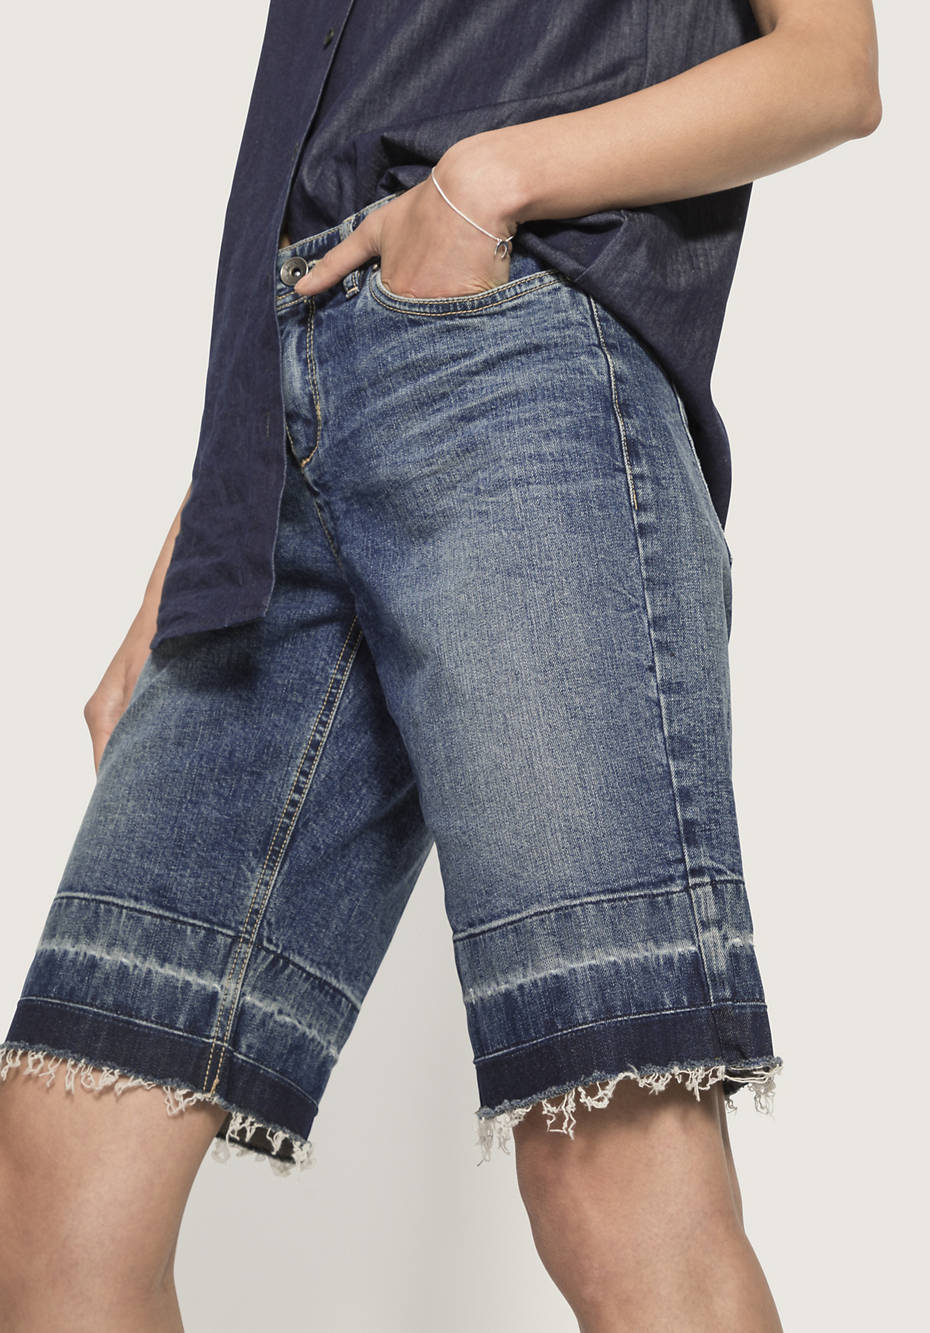 Jeans Bermuda aus Bio-Denim from Hessnatur